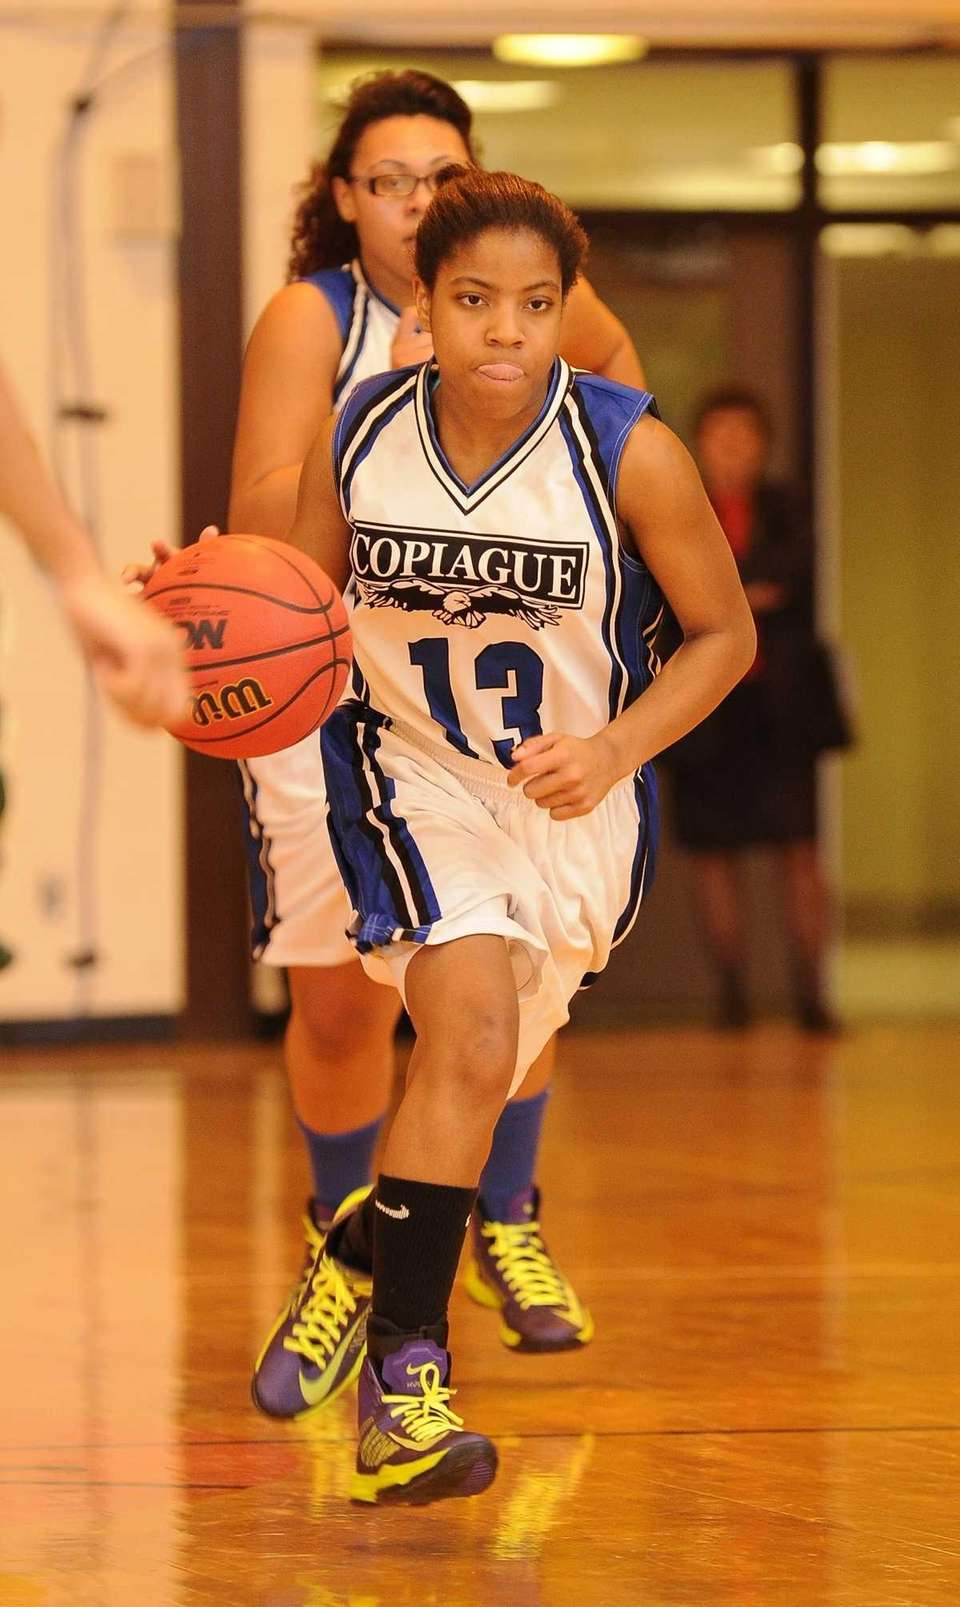 Copiague's Ihnacinse Grady dribbles the ball against Longwood